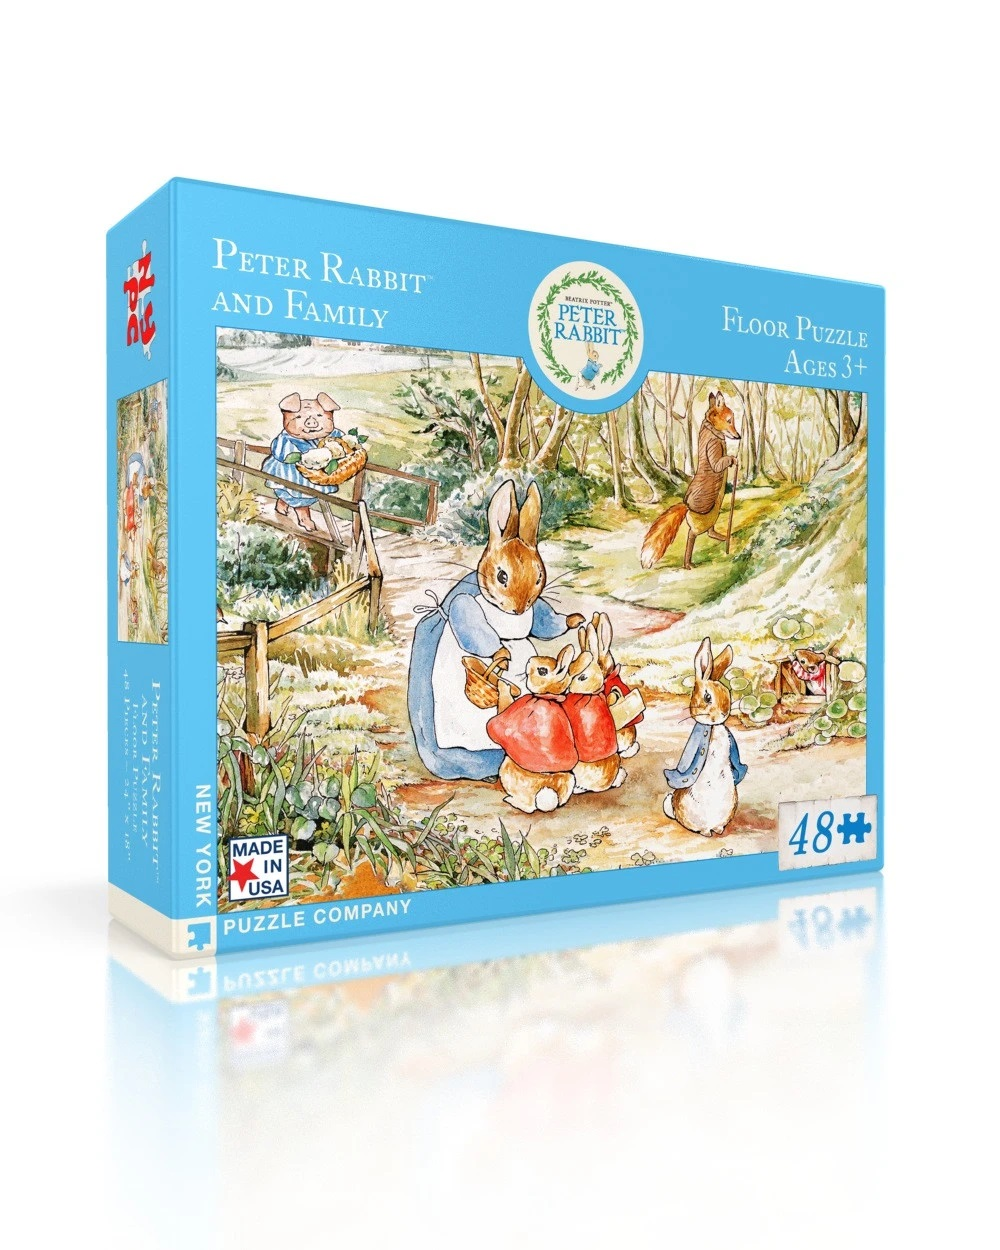 Peter Rabbit & Family Puzzle